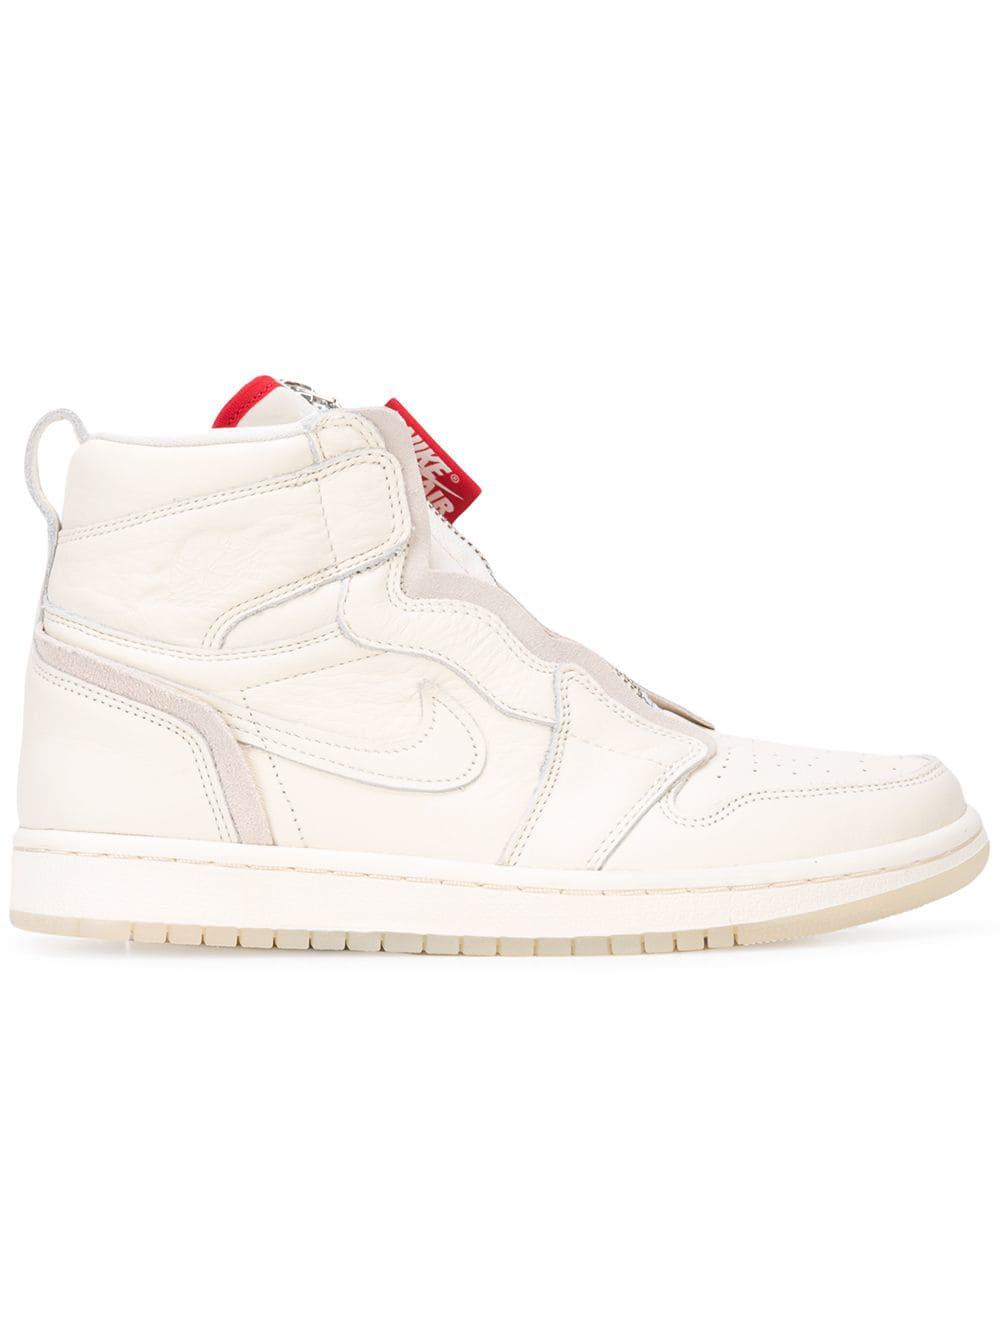 0f057a7746249 Lyst - Nike Anna Wintour X Air 1 High Zip Awok Sneakers in White